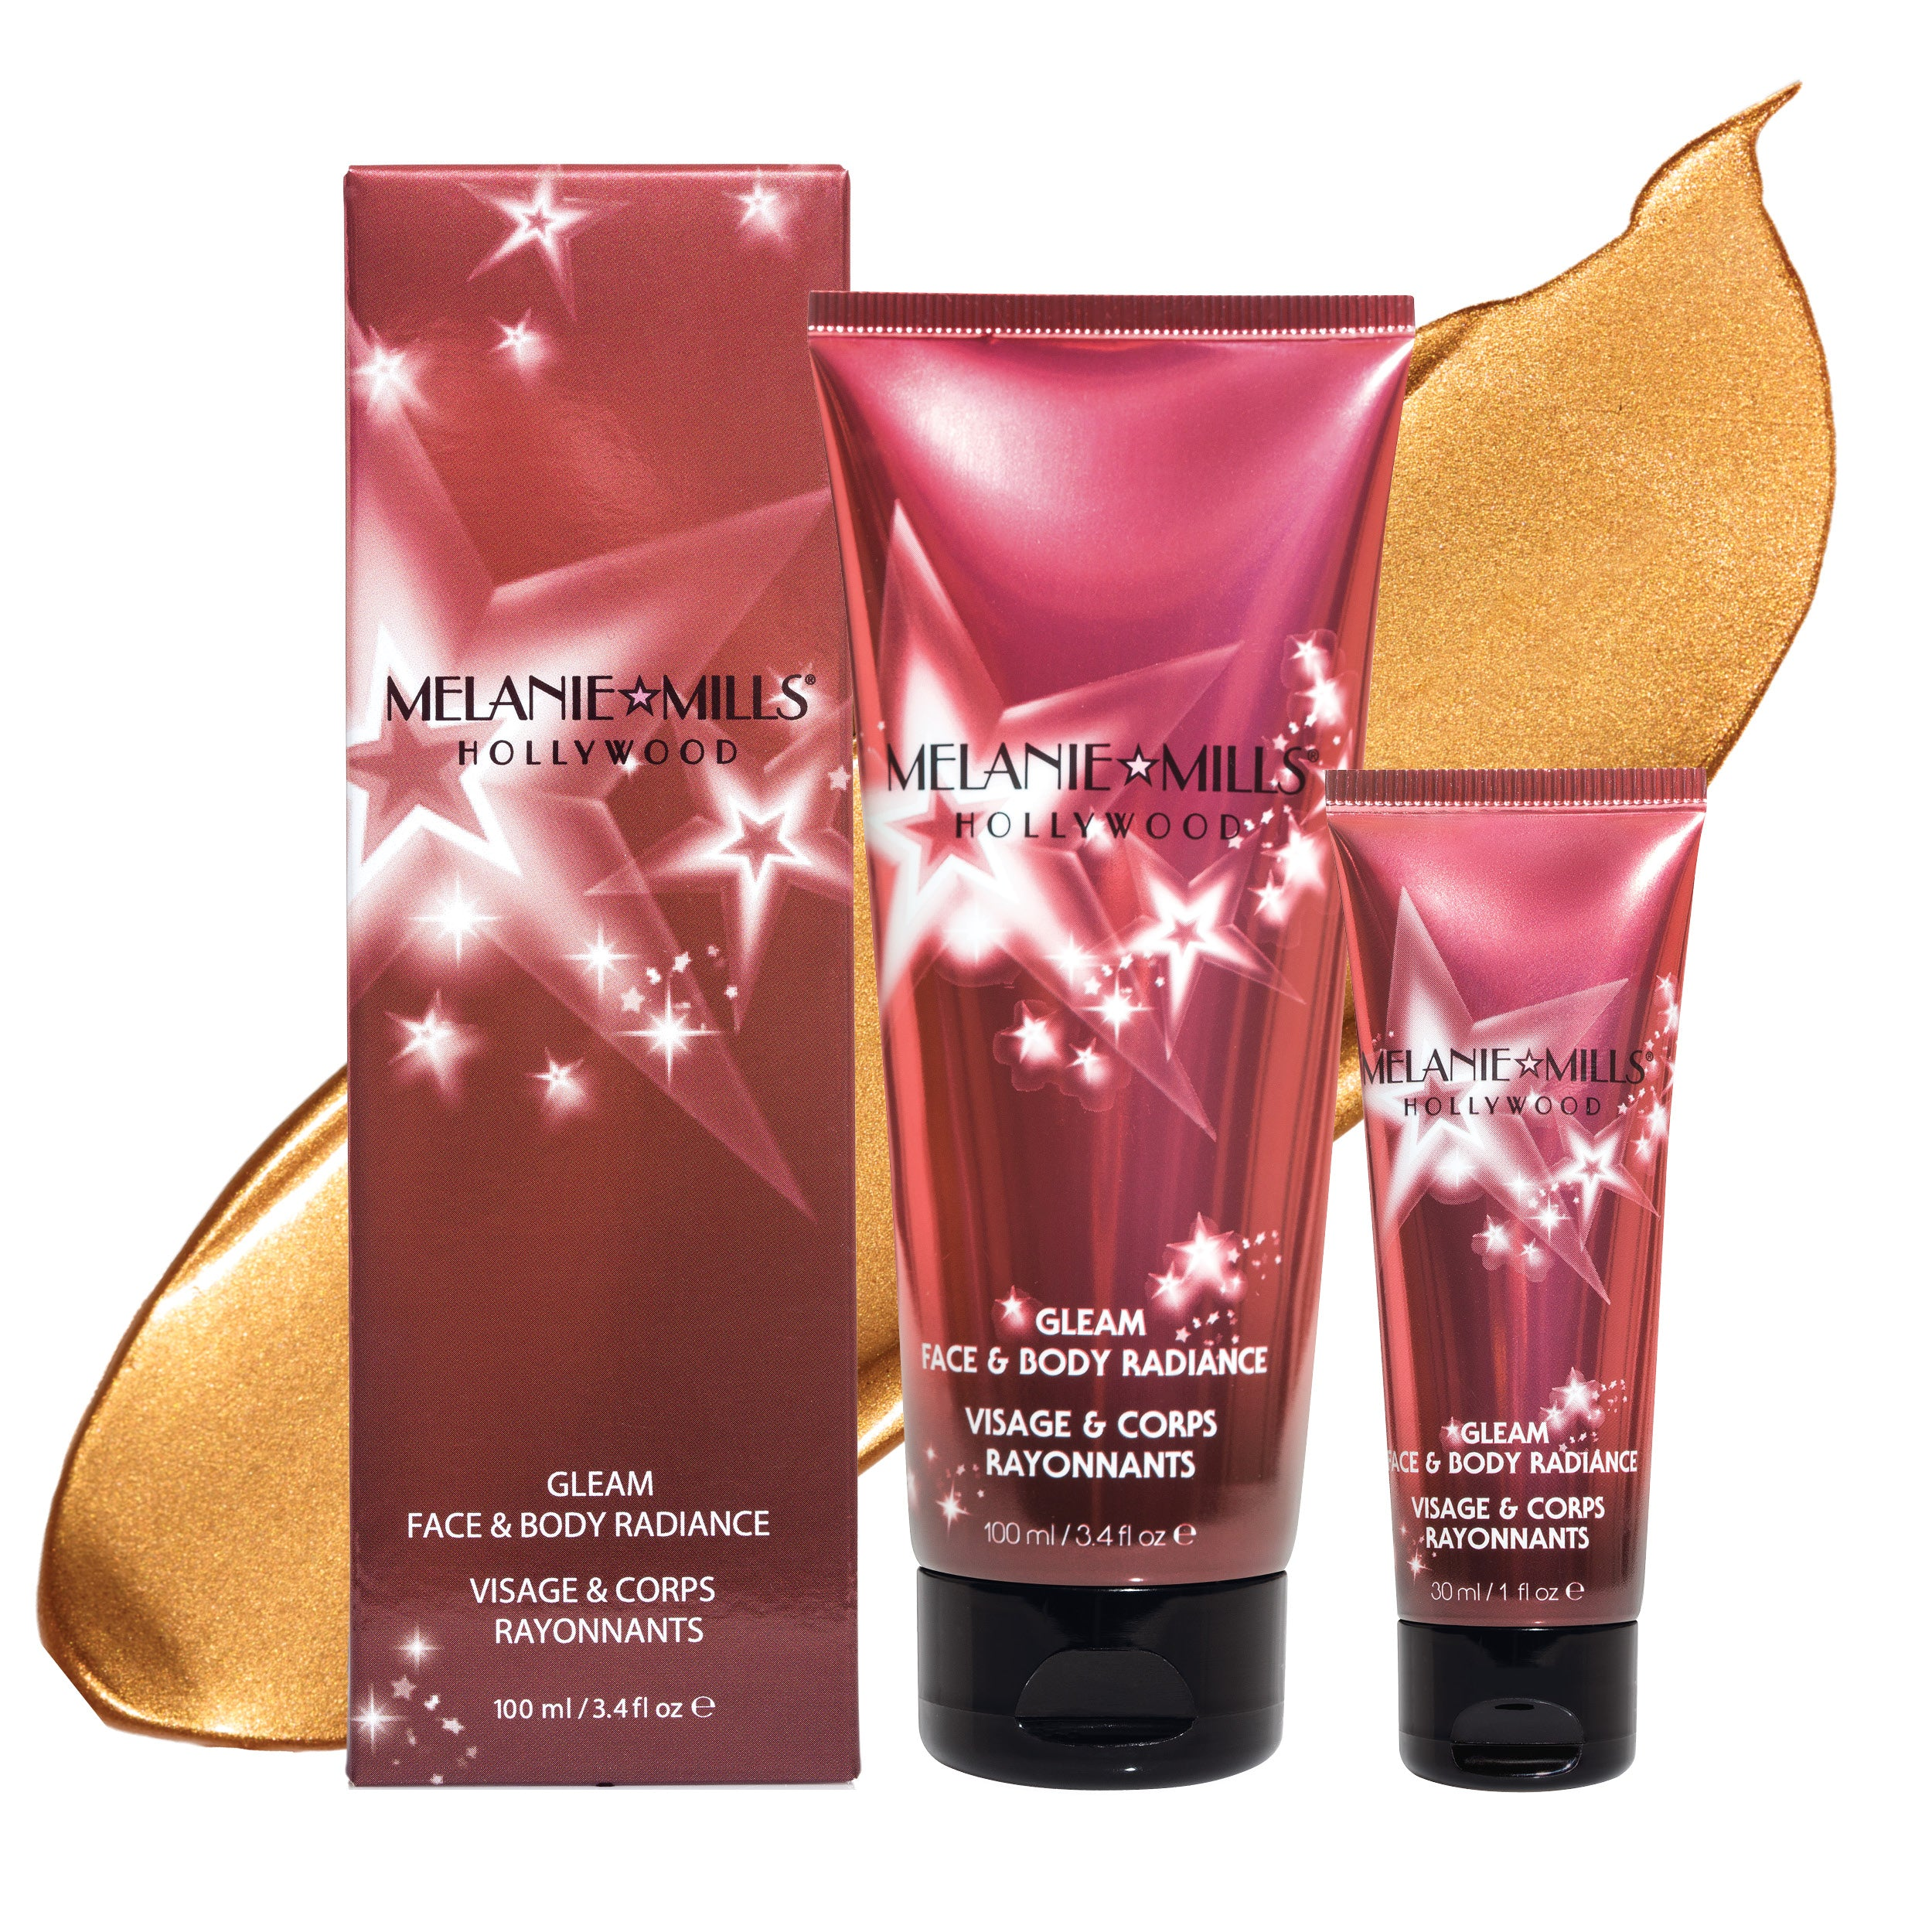 ROSE GOLD Gleam Face & Body Radiance All In One Makeup, Moisturizer & Glow